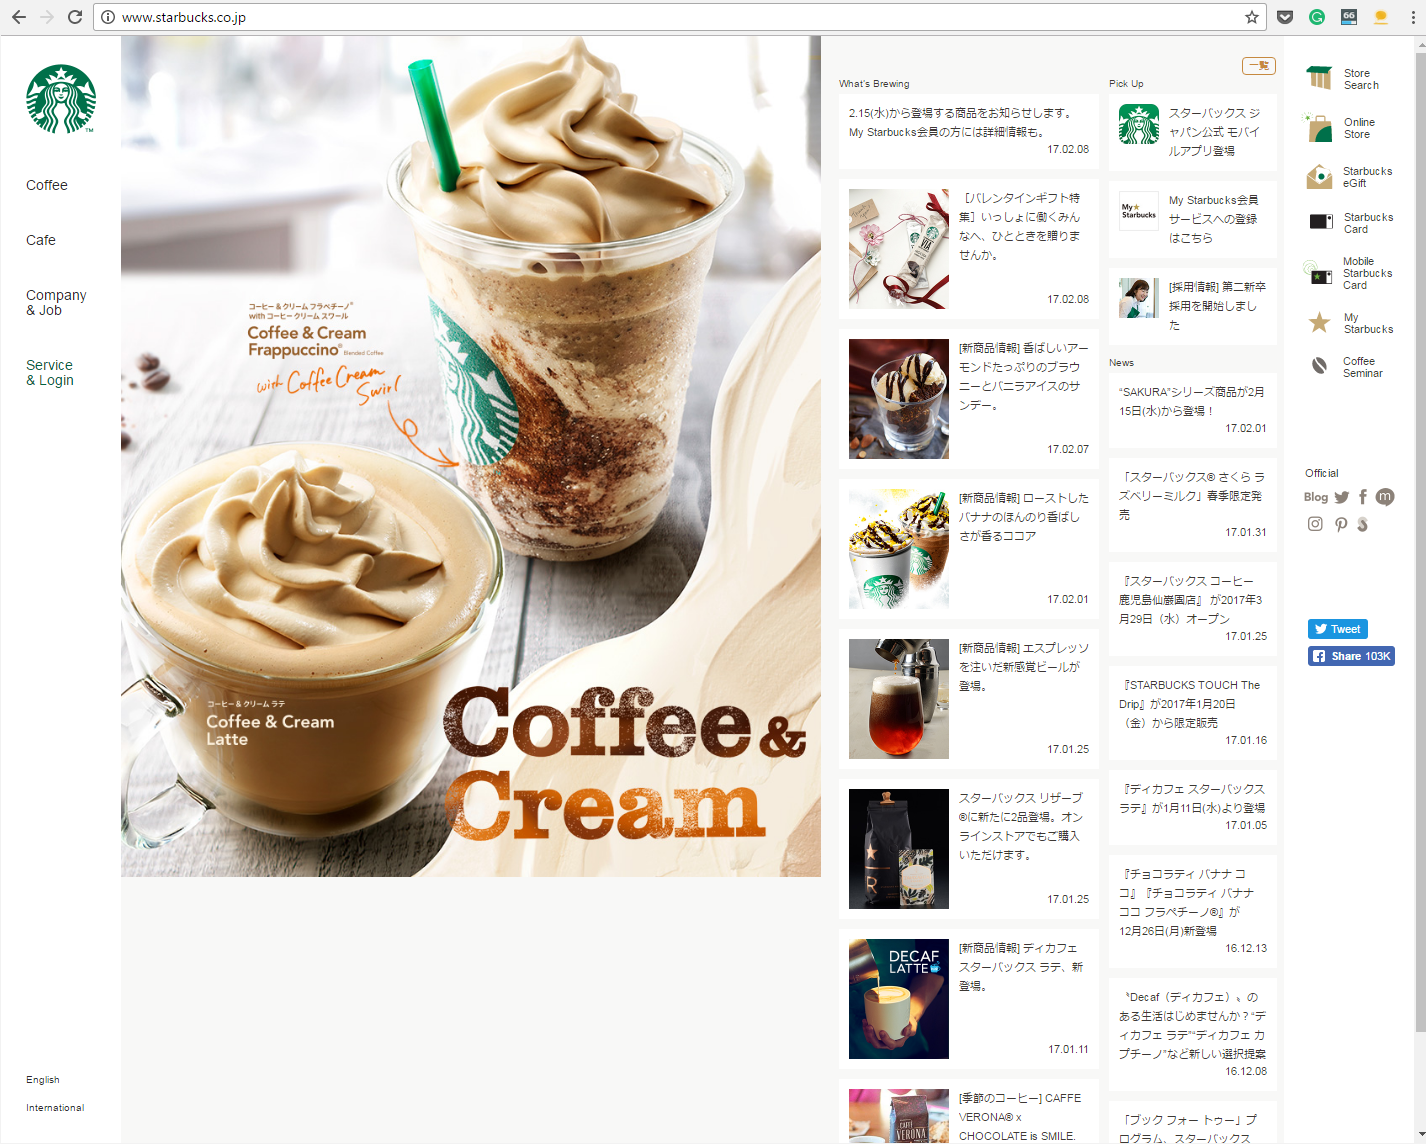 www.starbucks.co.jp screen